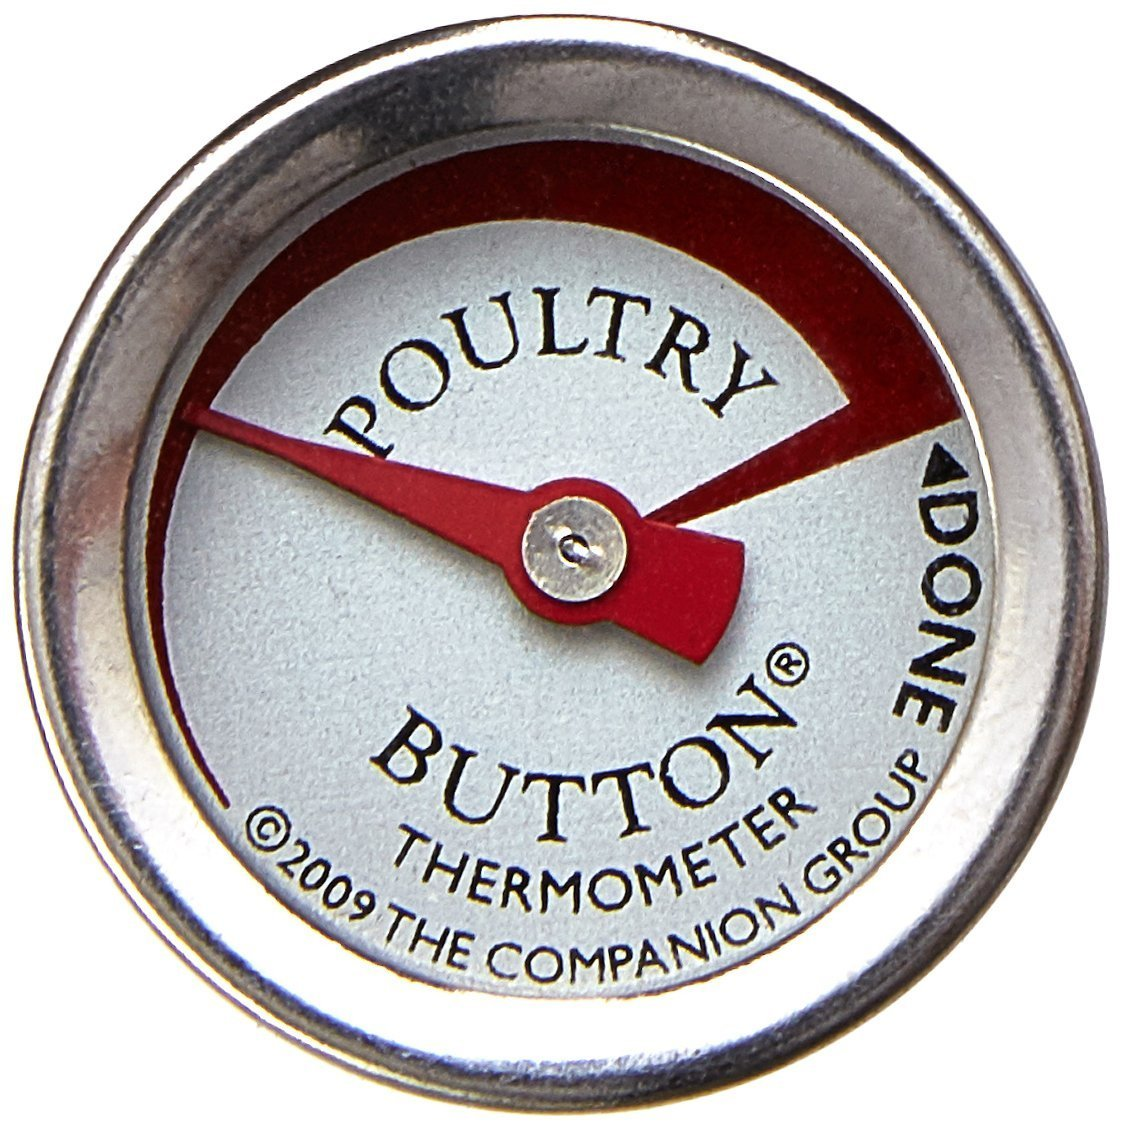 Charcoal Companion Reusable Poultry Button Thermometer